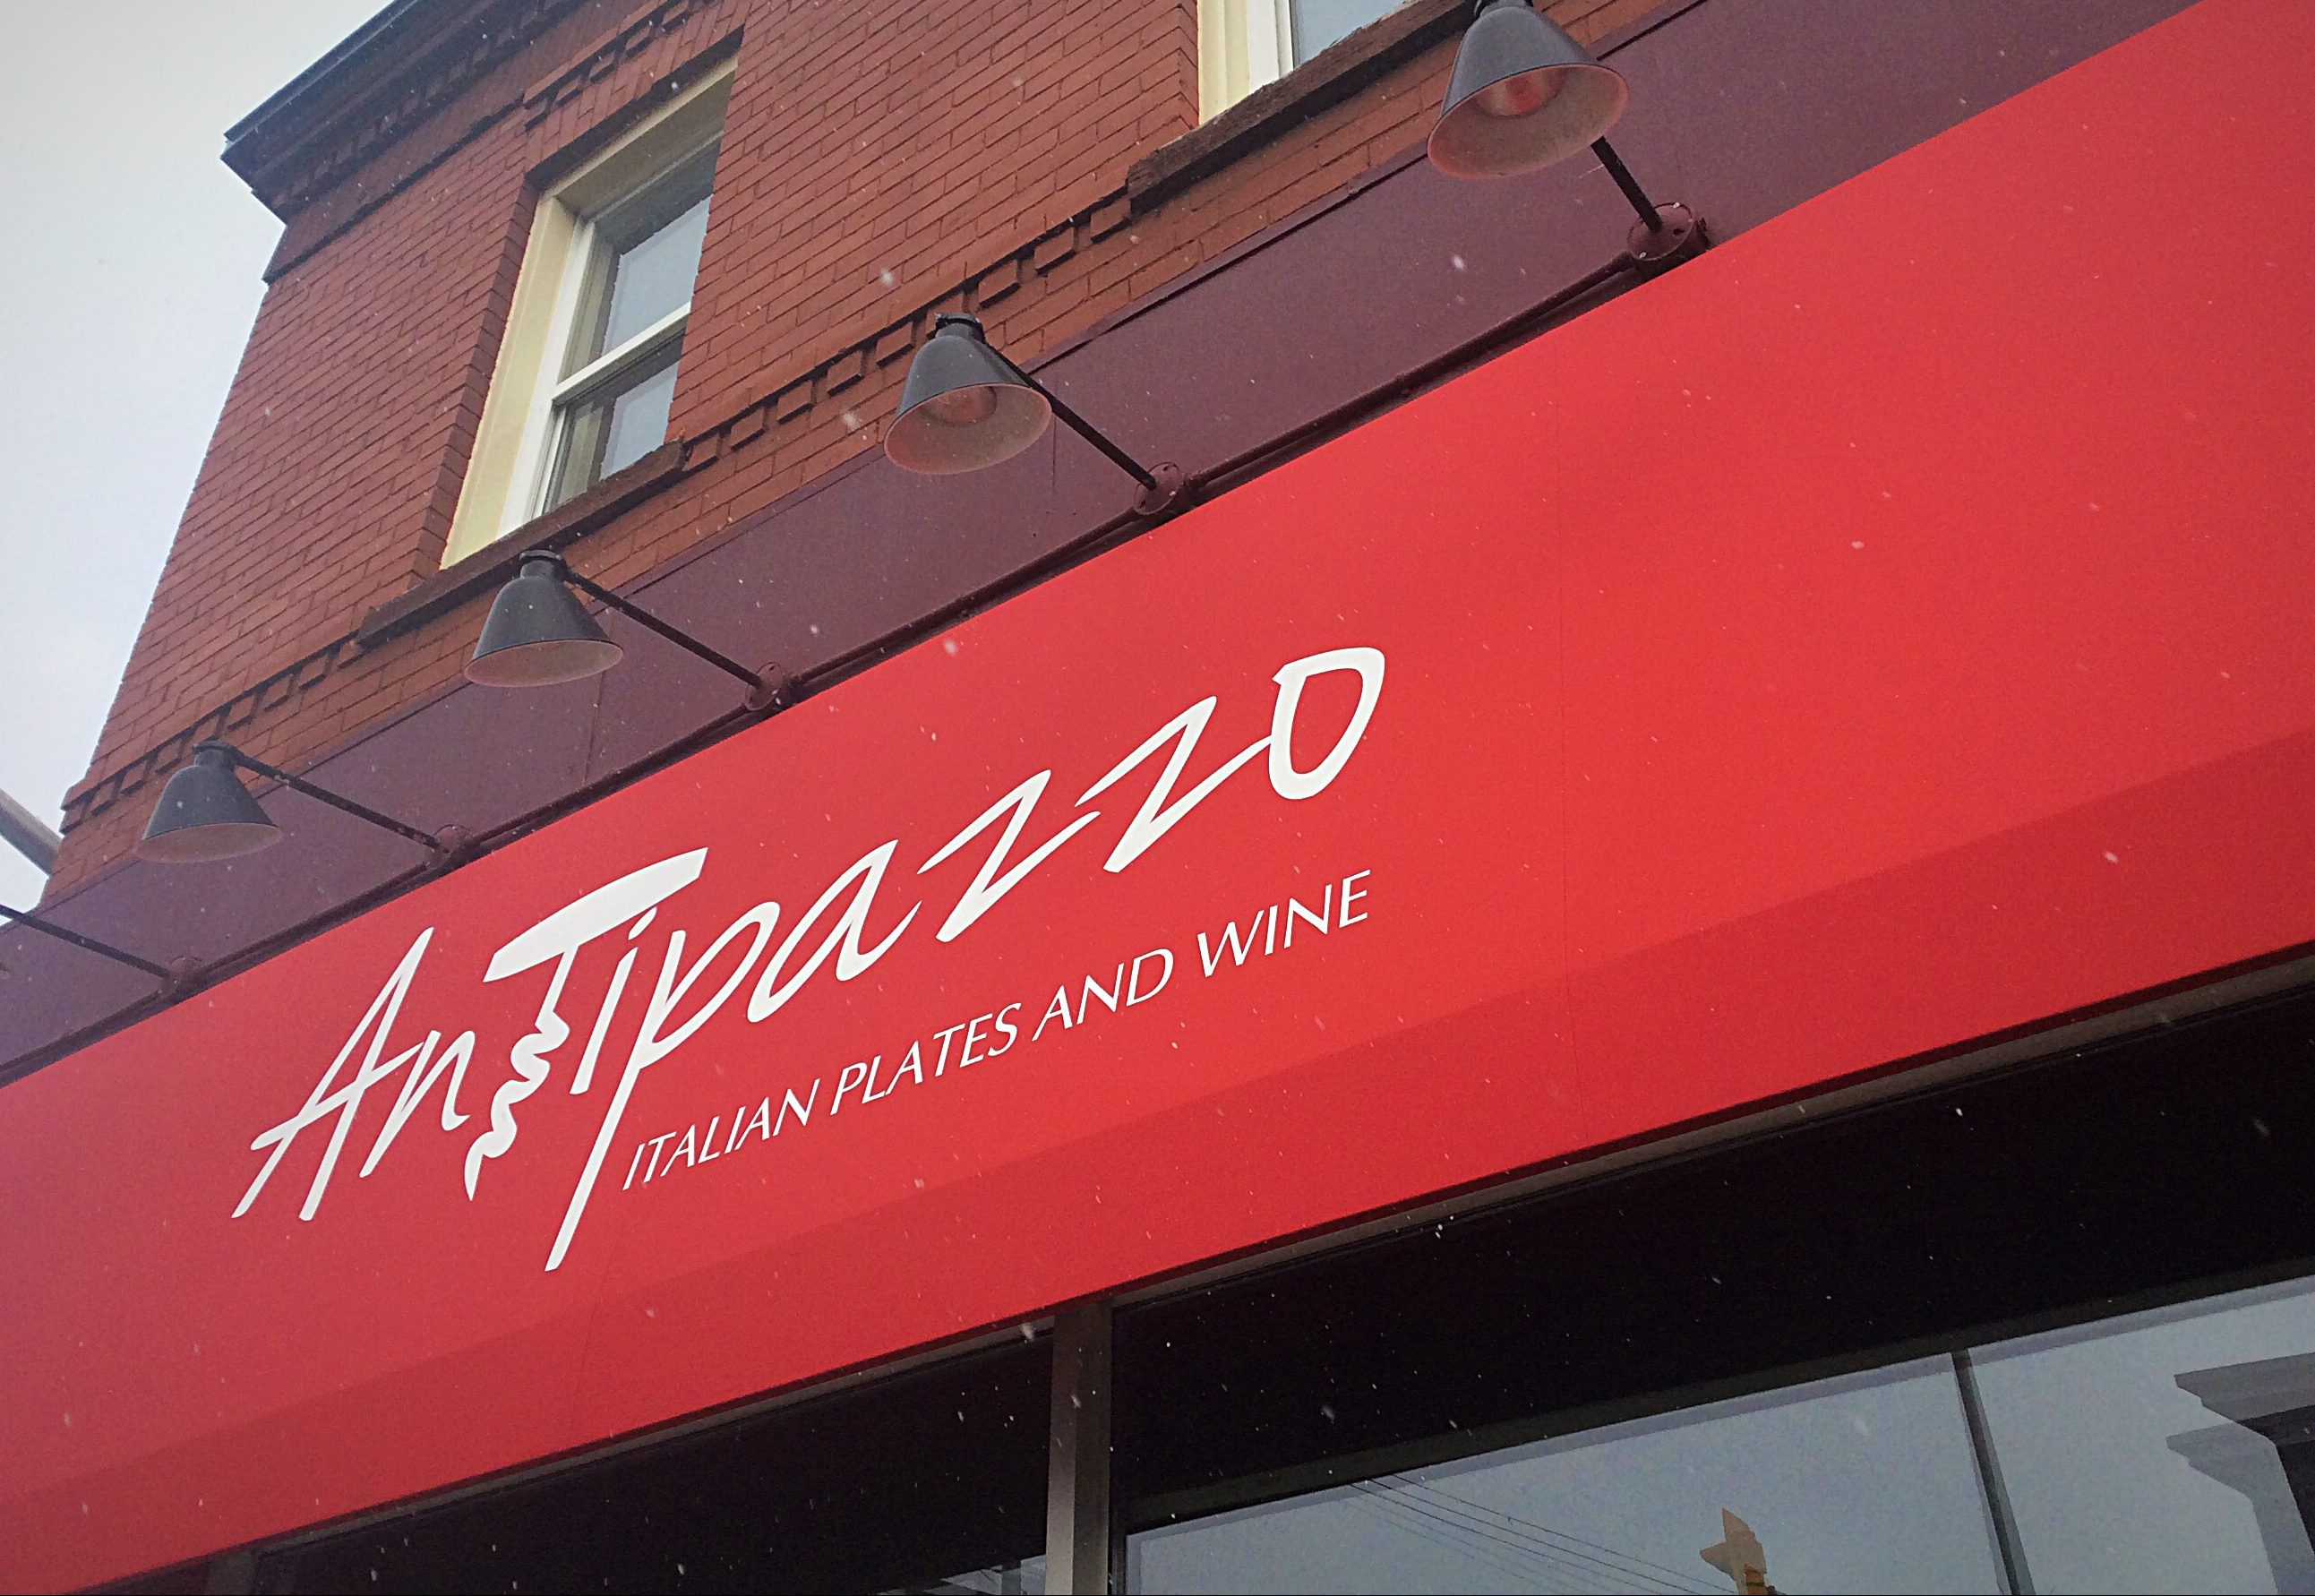 Just two months after the closing of John Taylor's Genuine, restaurateur and sommelier Tony Irace has launched Antipazzo Italian Plates and Wine